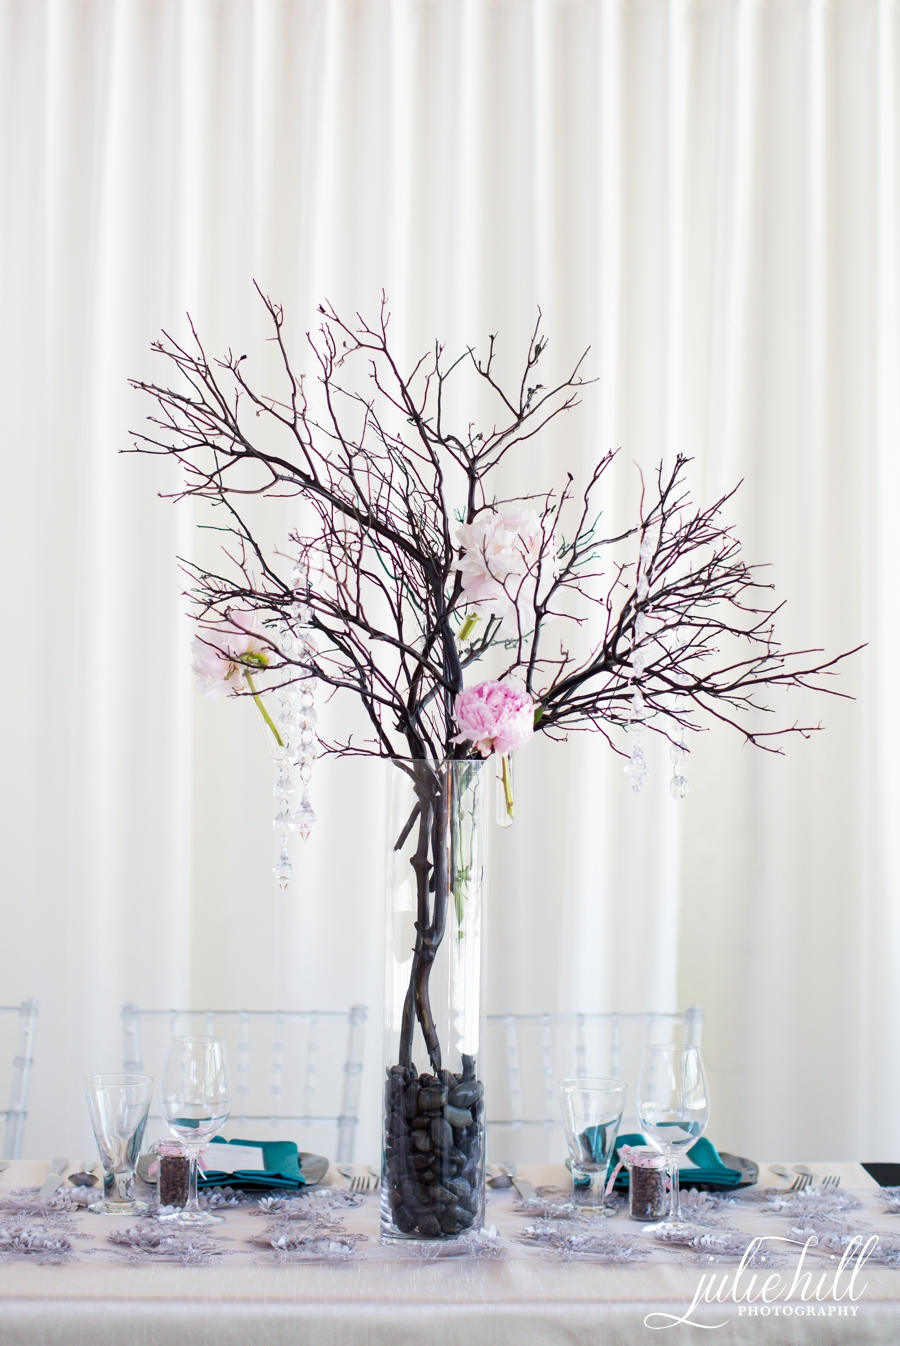 1-Priddis-Alberta-Azuridge-Luxury-Julie-Hill-Photography-Wedding-Reception-centerpiece-photo01